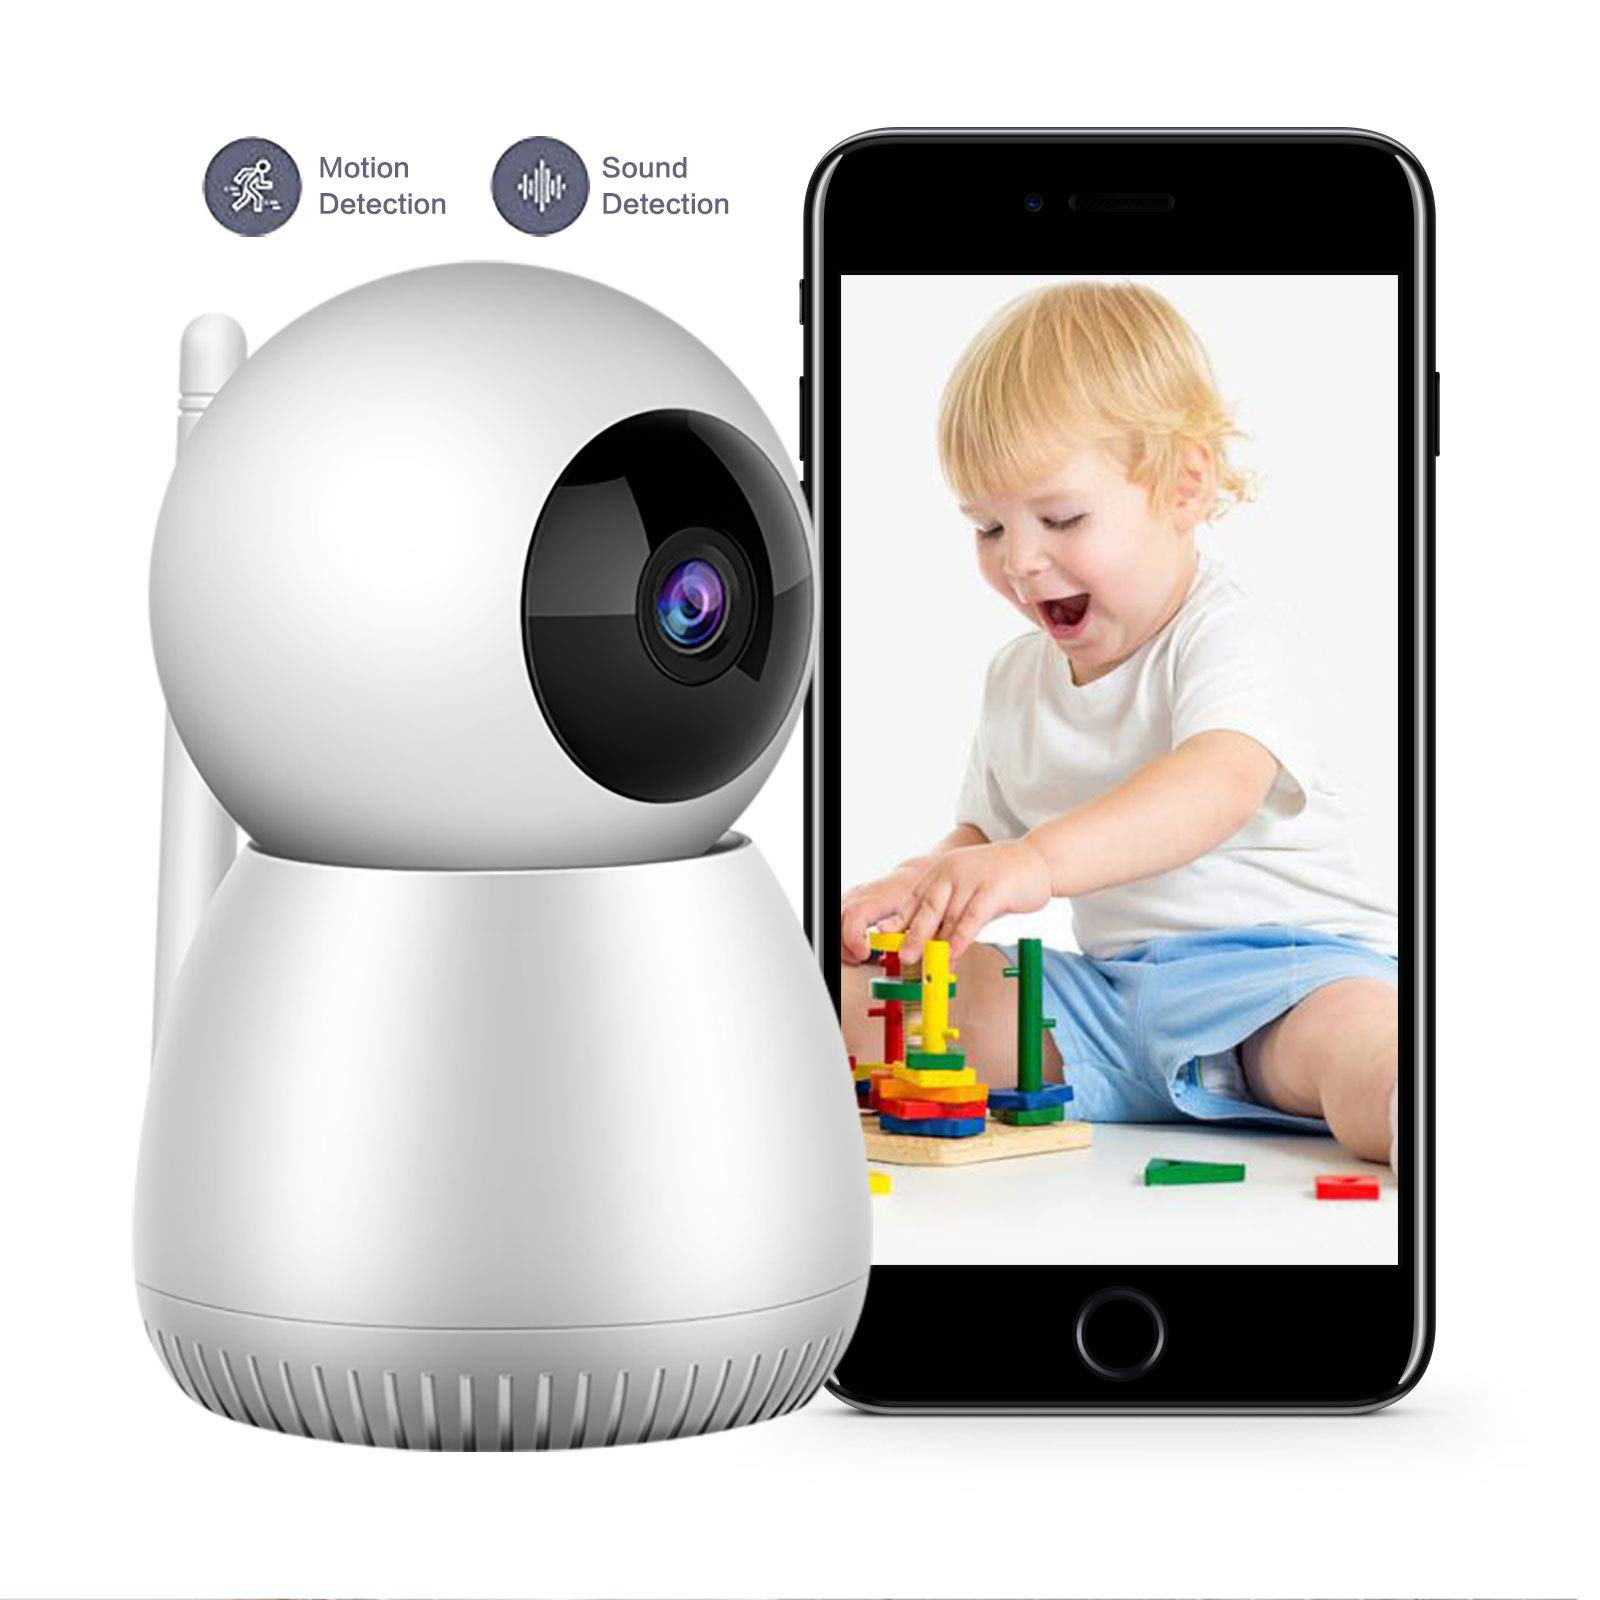 Baby Monitor,1080P FHD Home WiFi Security Camera Sound Motion Detection with Night Vision 2 Way Audio Cloud Service Monitor Baby/Elder/Pet Compatible with iOS/Android by Cuwada